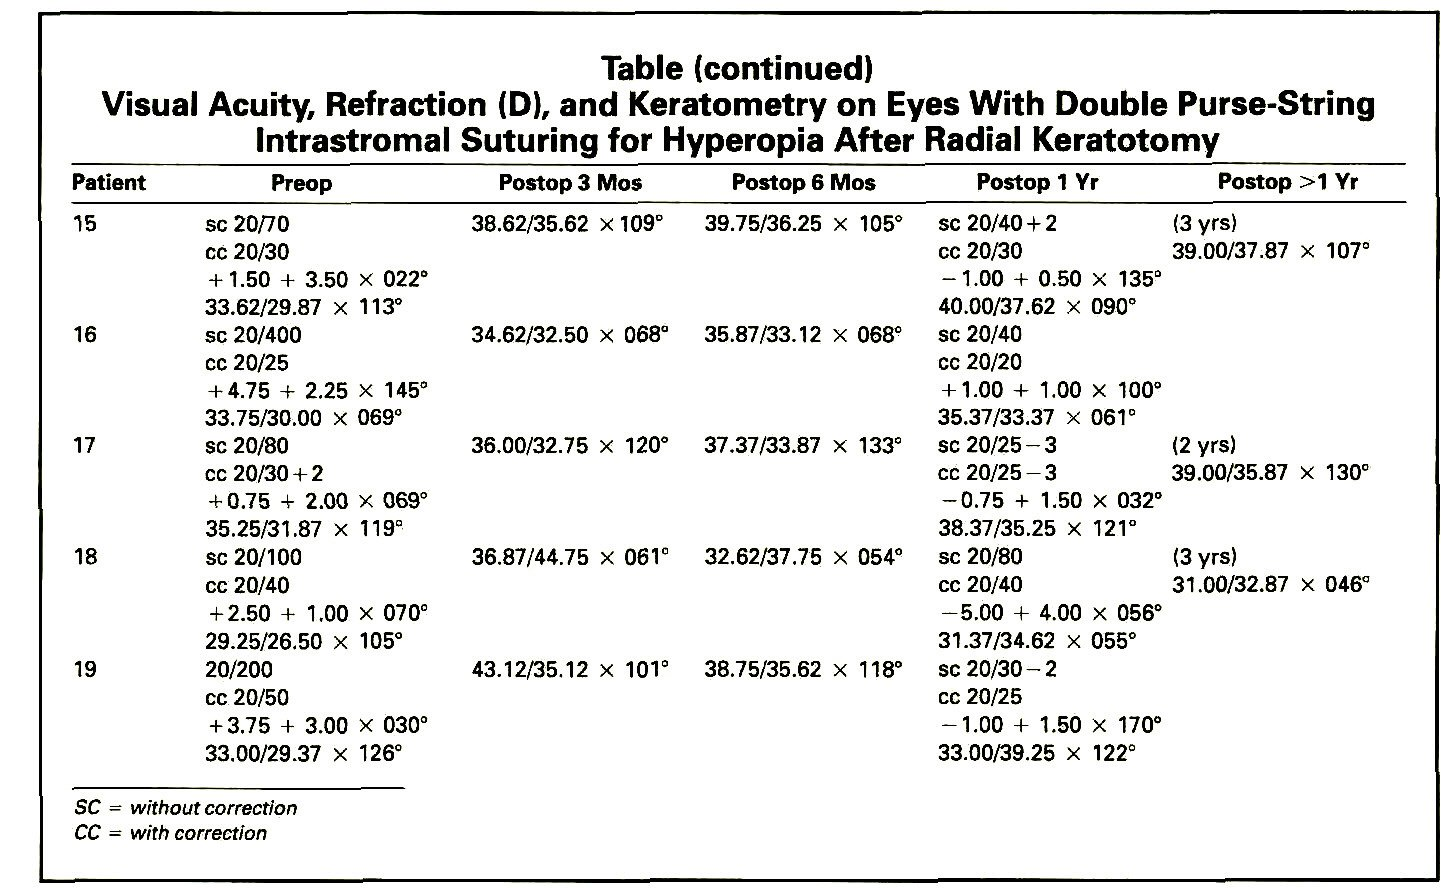 TableVisual Acuity, Refraction (D), and Keratometry on Eyes With Double Purse-String Intrastromal Suturing for Hyperopia After Radial Keratotomy